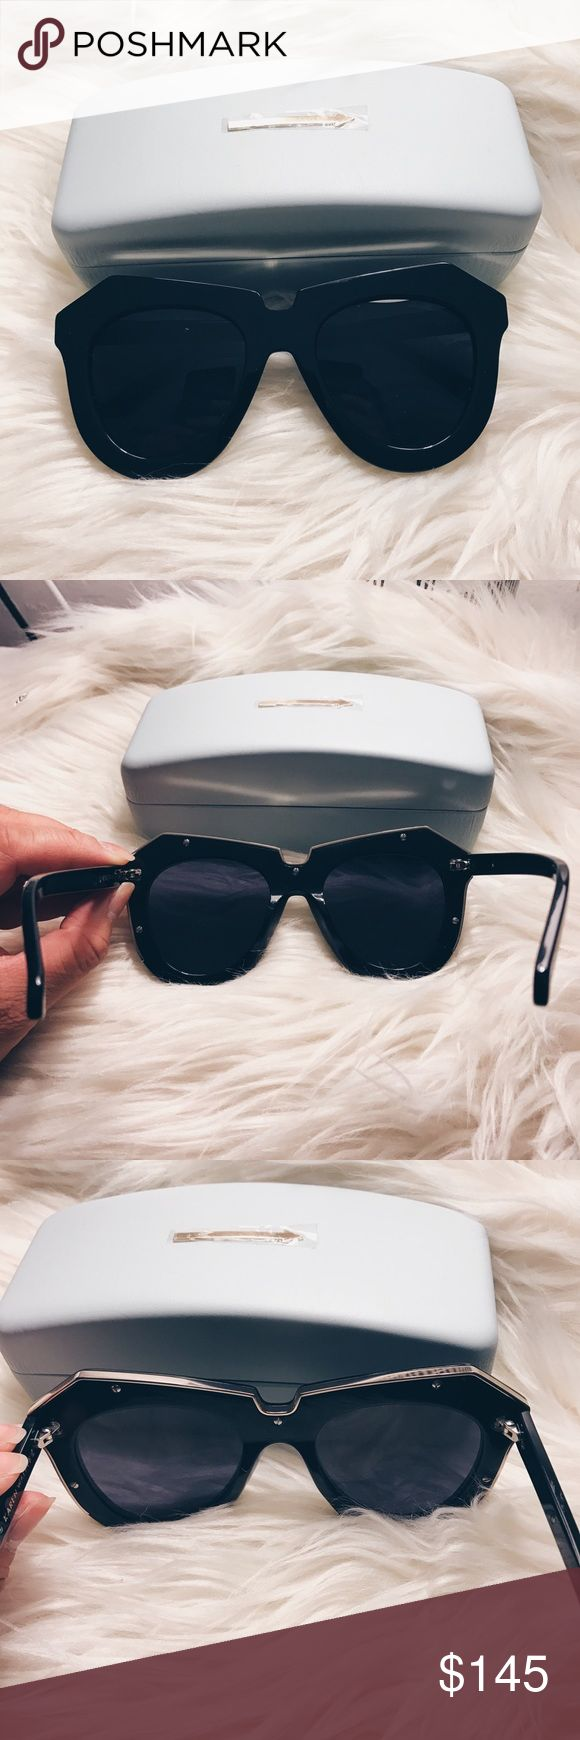 """Karen Walker """"One Meadow"""" Sunglasses  Karen Walker """"One Meadow"""" Sunglasses  Excellent condition. Worn one time. Minor scratch on the frame (as shown in 4th photo). It is not noticeable when worn. Case and tags included. Black with a gold rim accent. Karen Walker Accessories Sunglasses"""